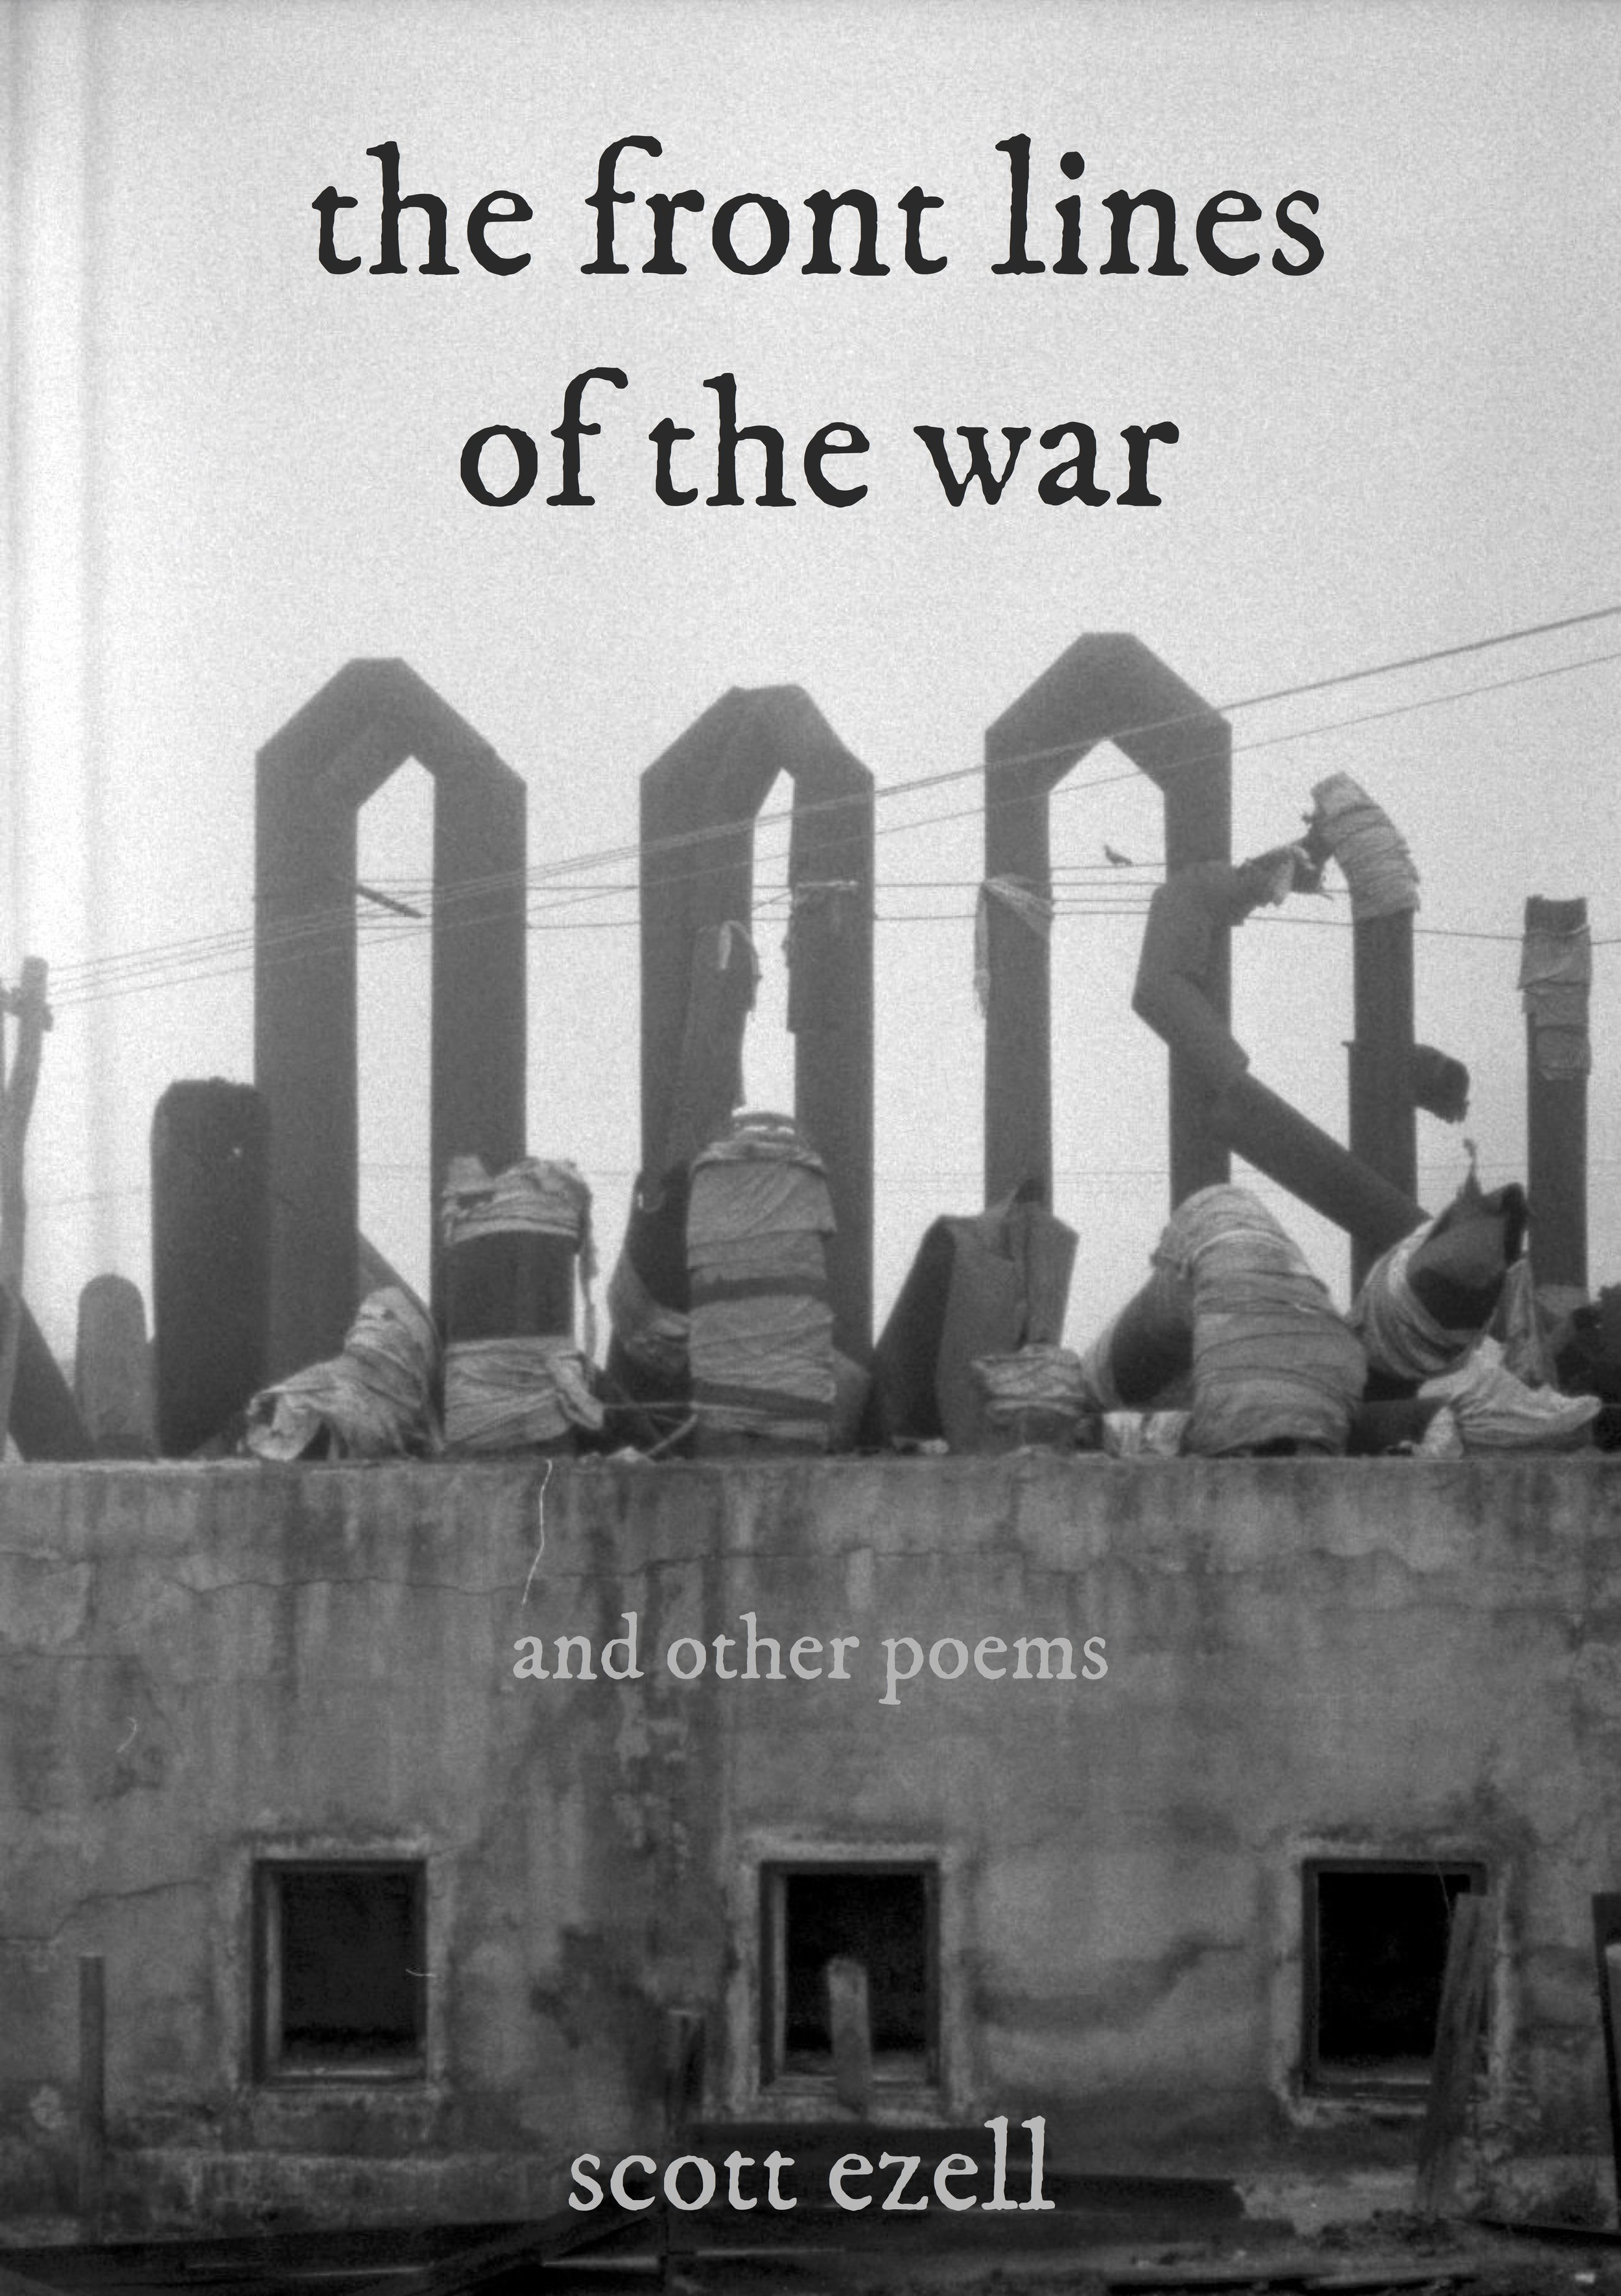 the front lines of the war cover.jpg